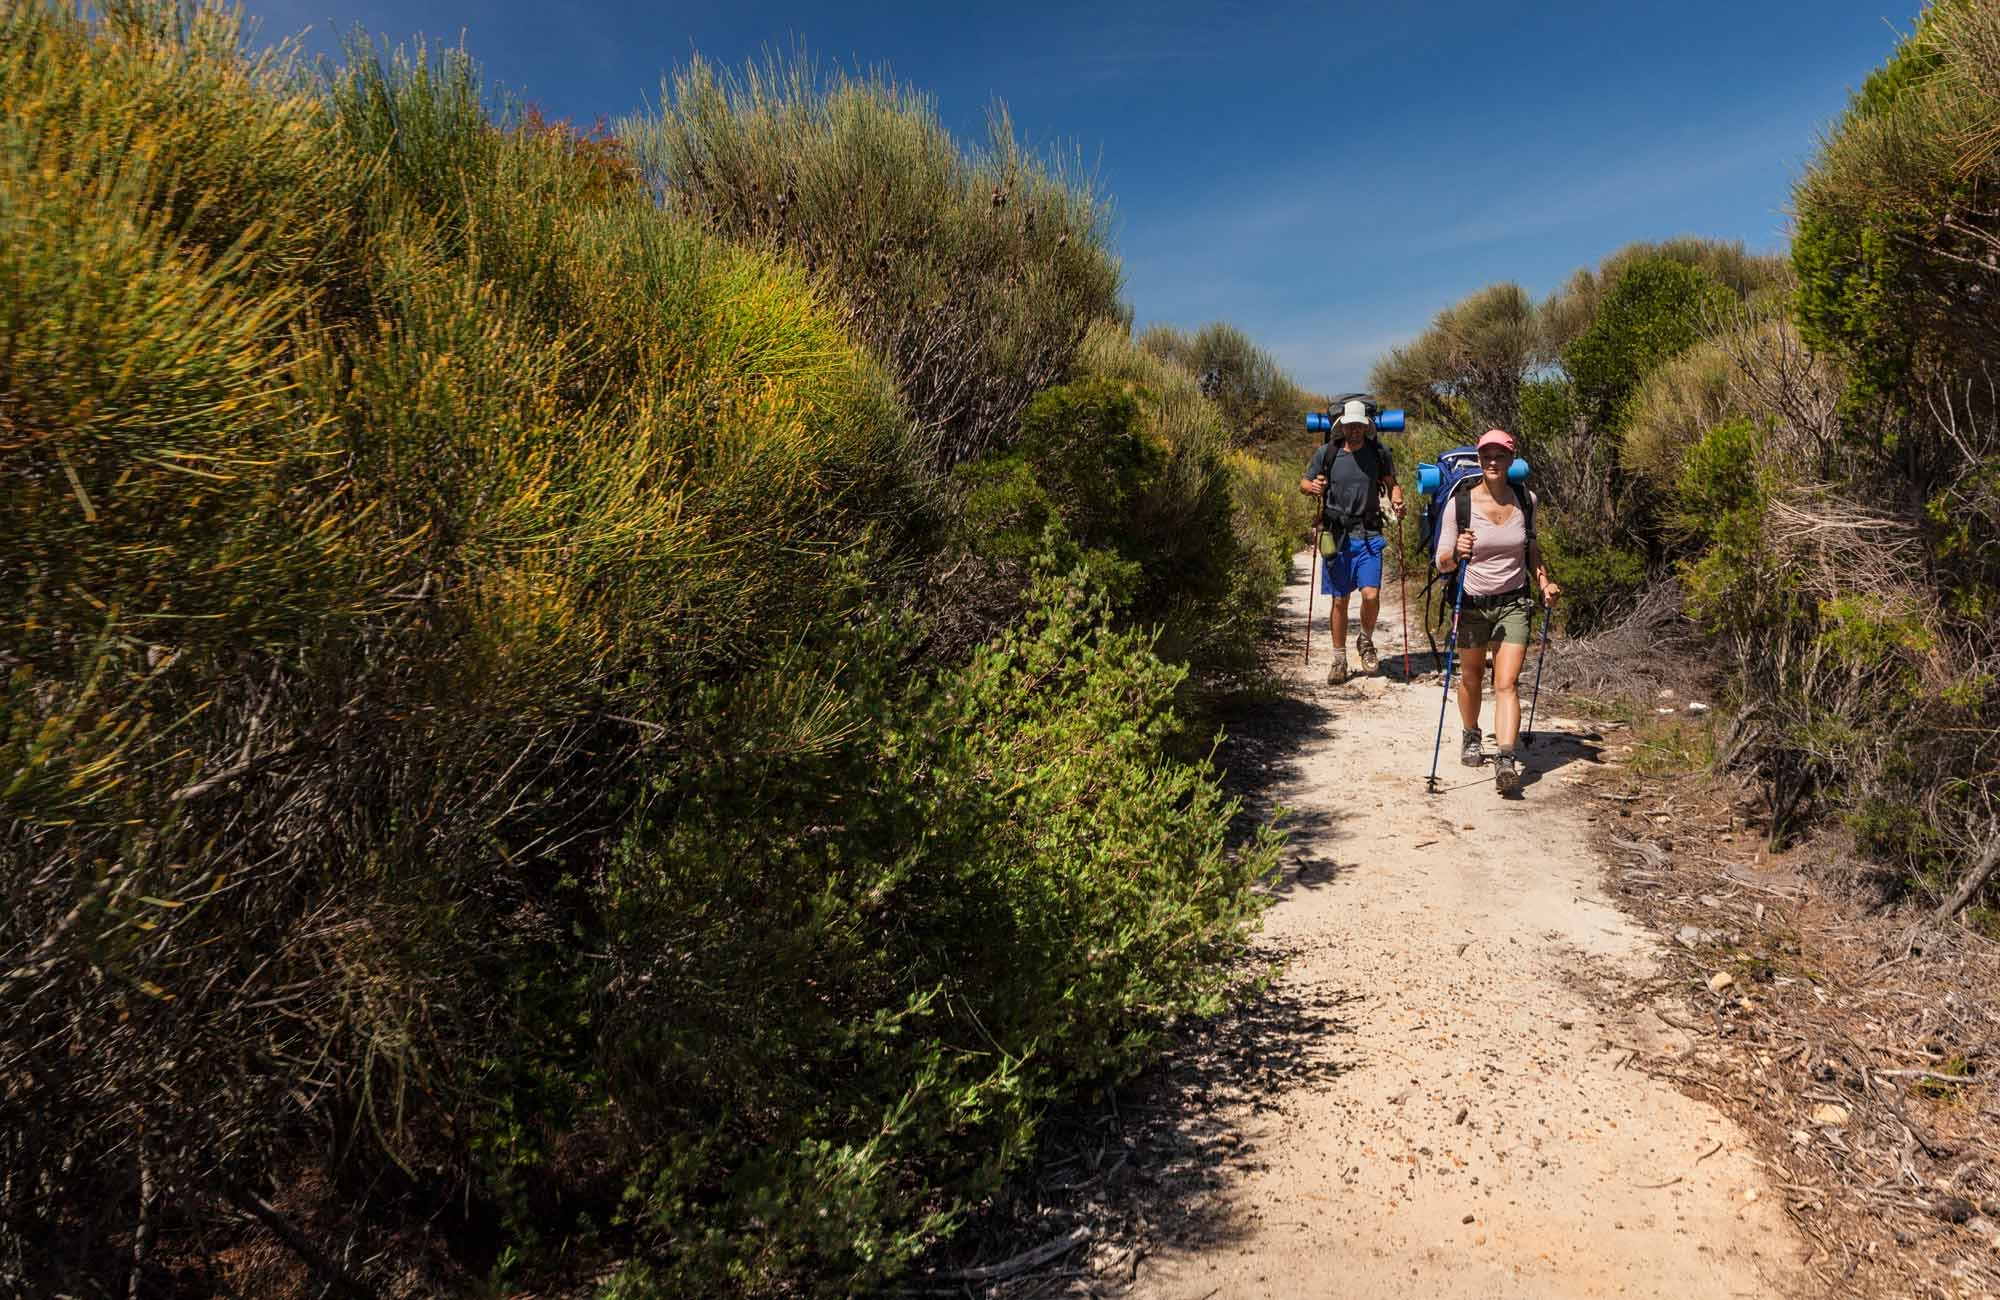 Coastal Walk, Royal National Park. Photo: David Finnegan